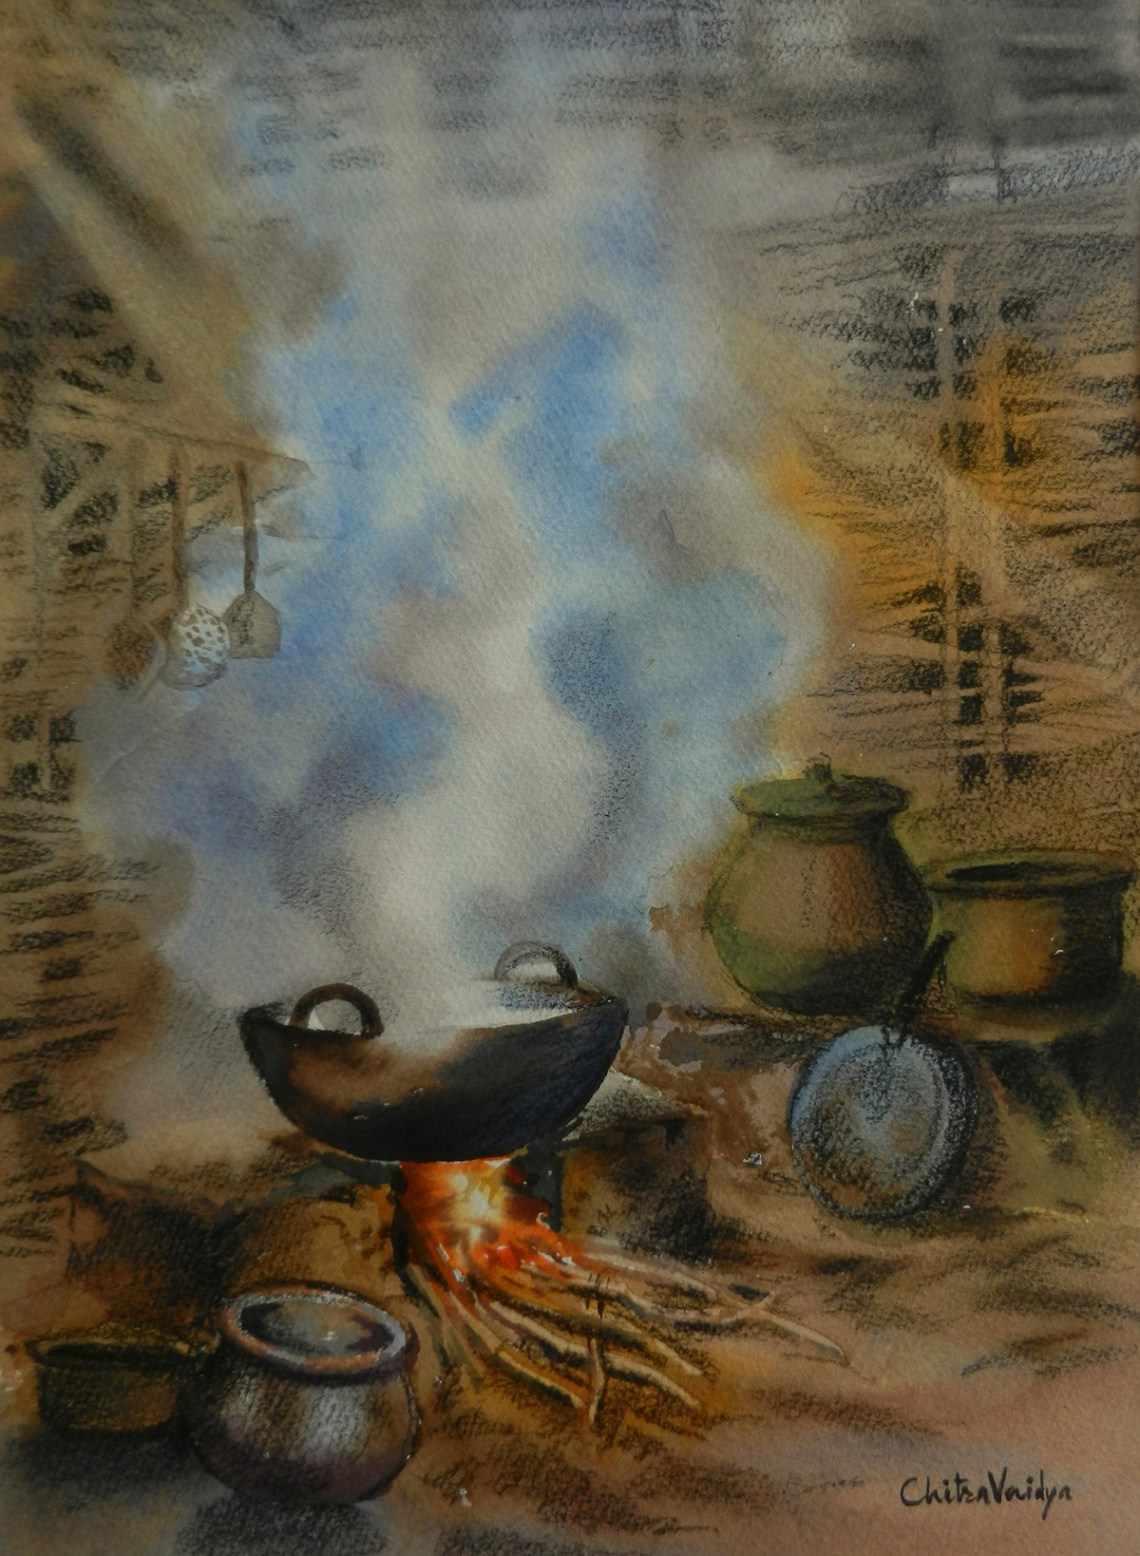 Chulha painting - 2 by Chitra Vaidya, Watercolour & Charcoal on Paper, 14 x 10 inches (rural life painting depicting traditional cooking in Indian villages)